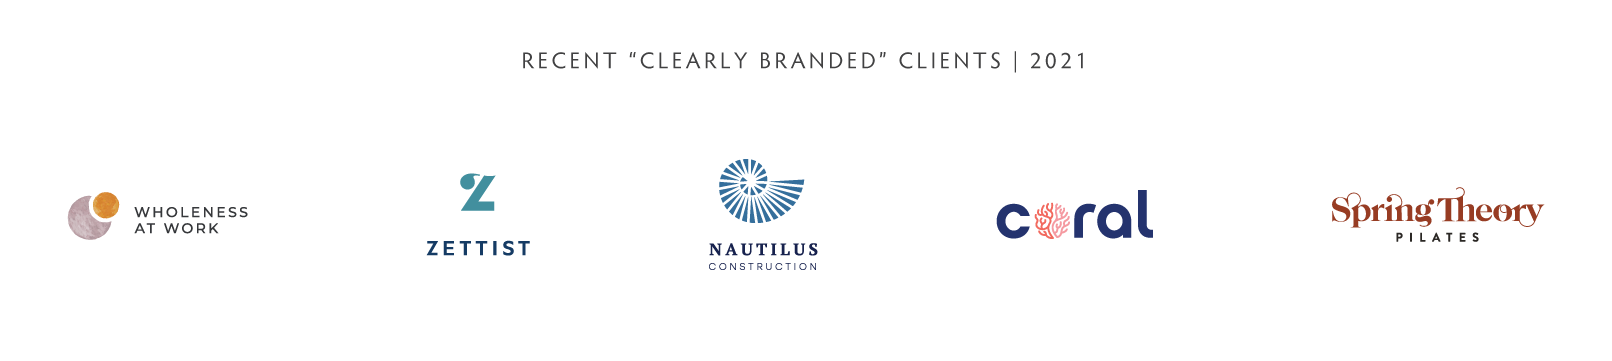 recent clearly branded clients logos, 2021